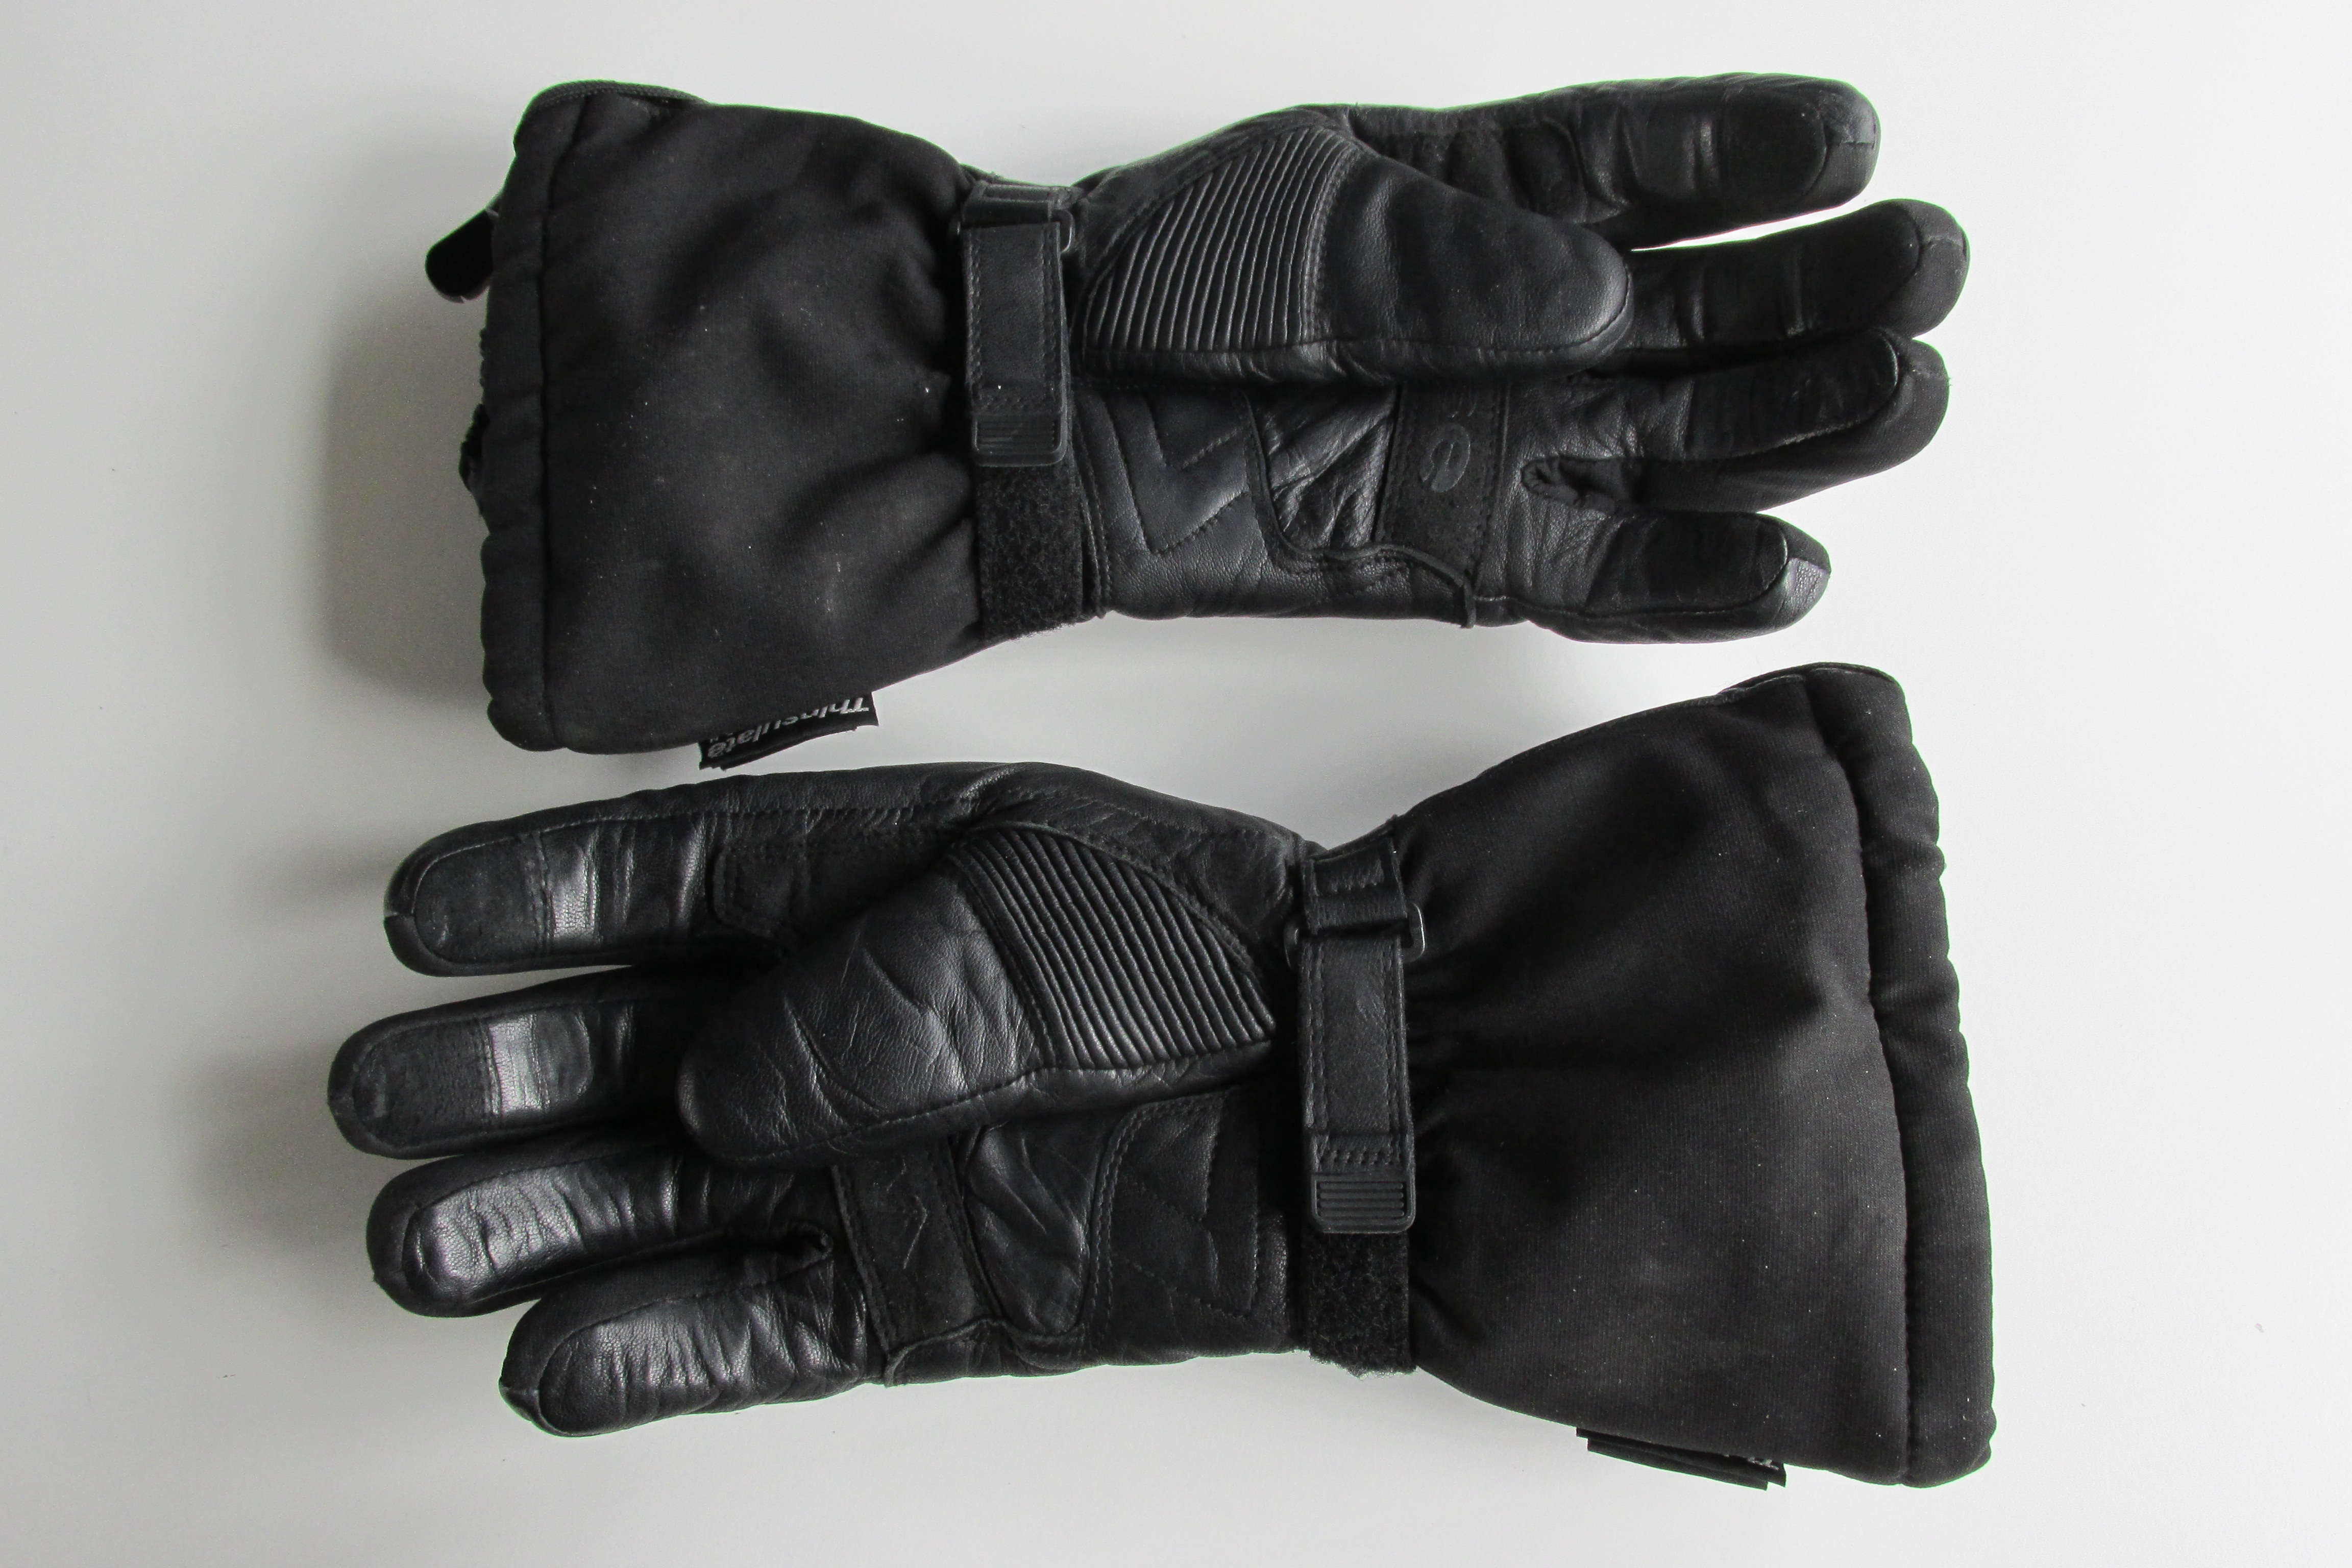 Heated motorcycle gloves vs heated grips - Details Heated Motorcycle Gloves